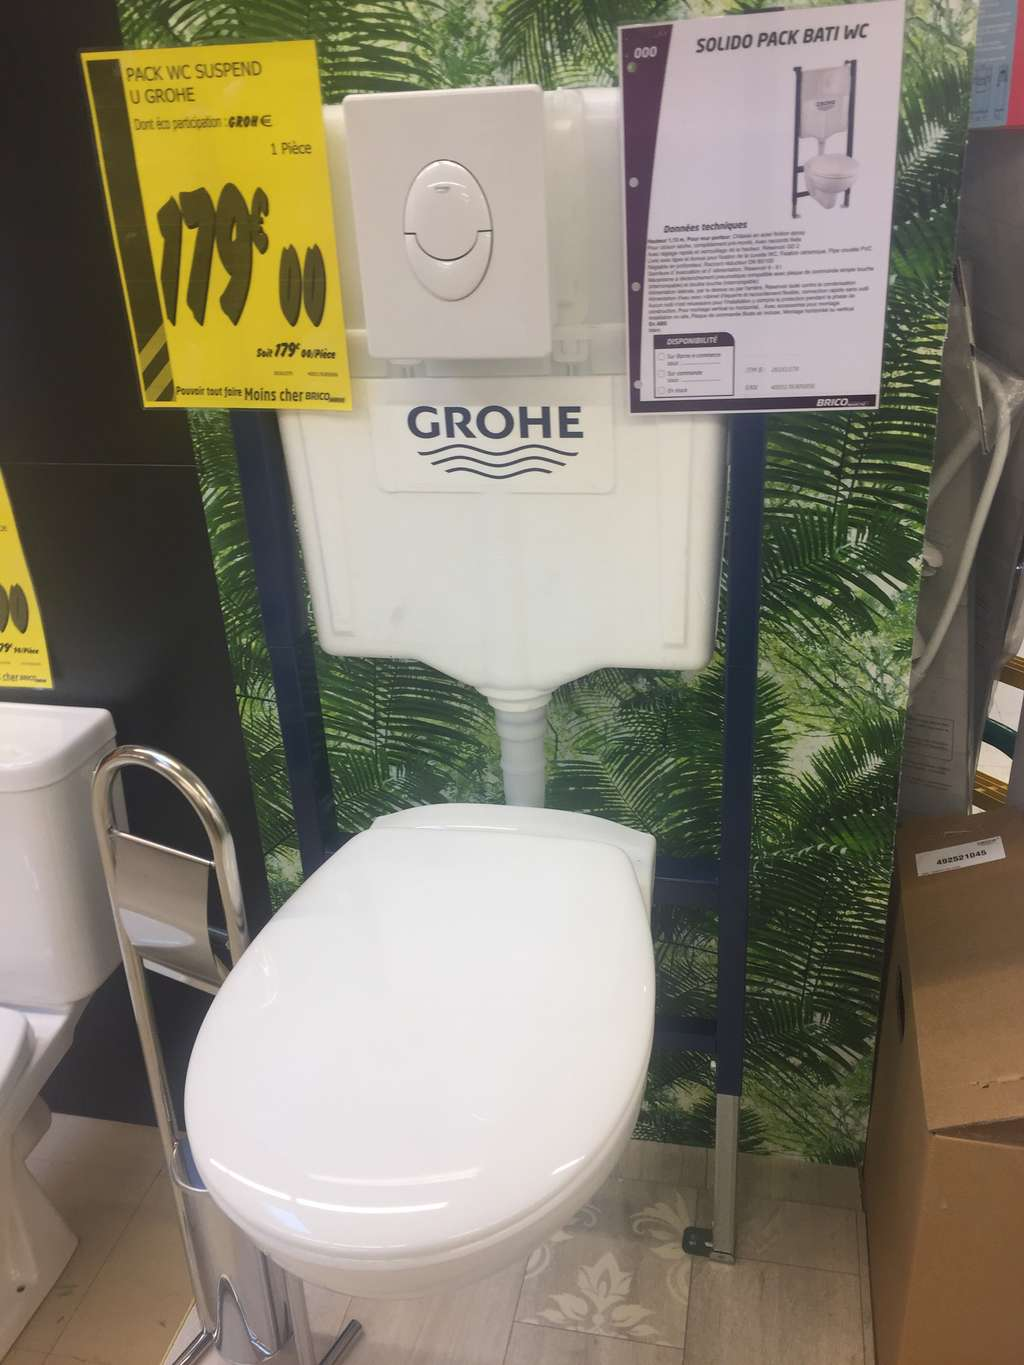 Wc Suspendu Grohe Dimension pack wc suspendu grohe solido bati - saint-marcel (27